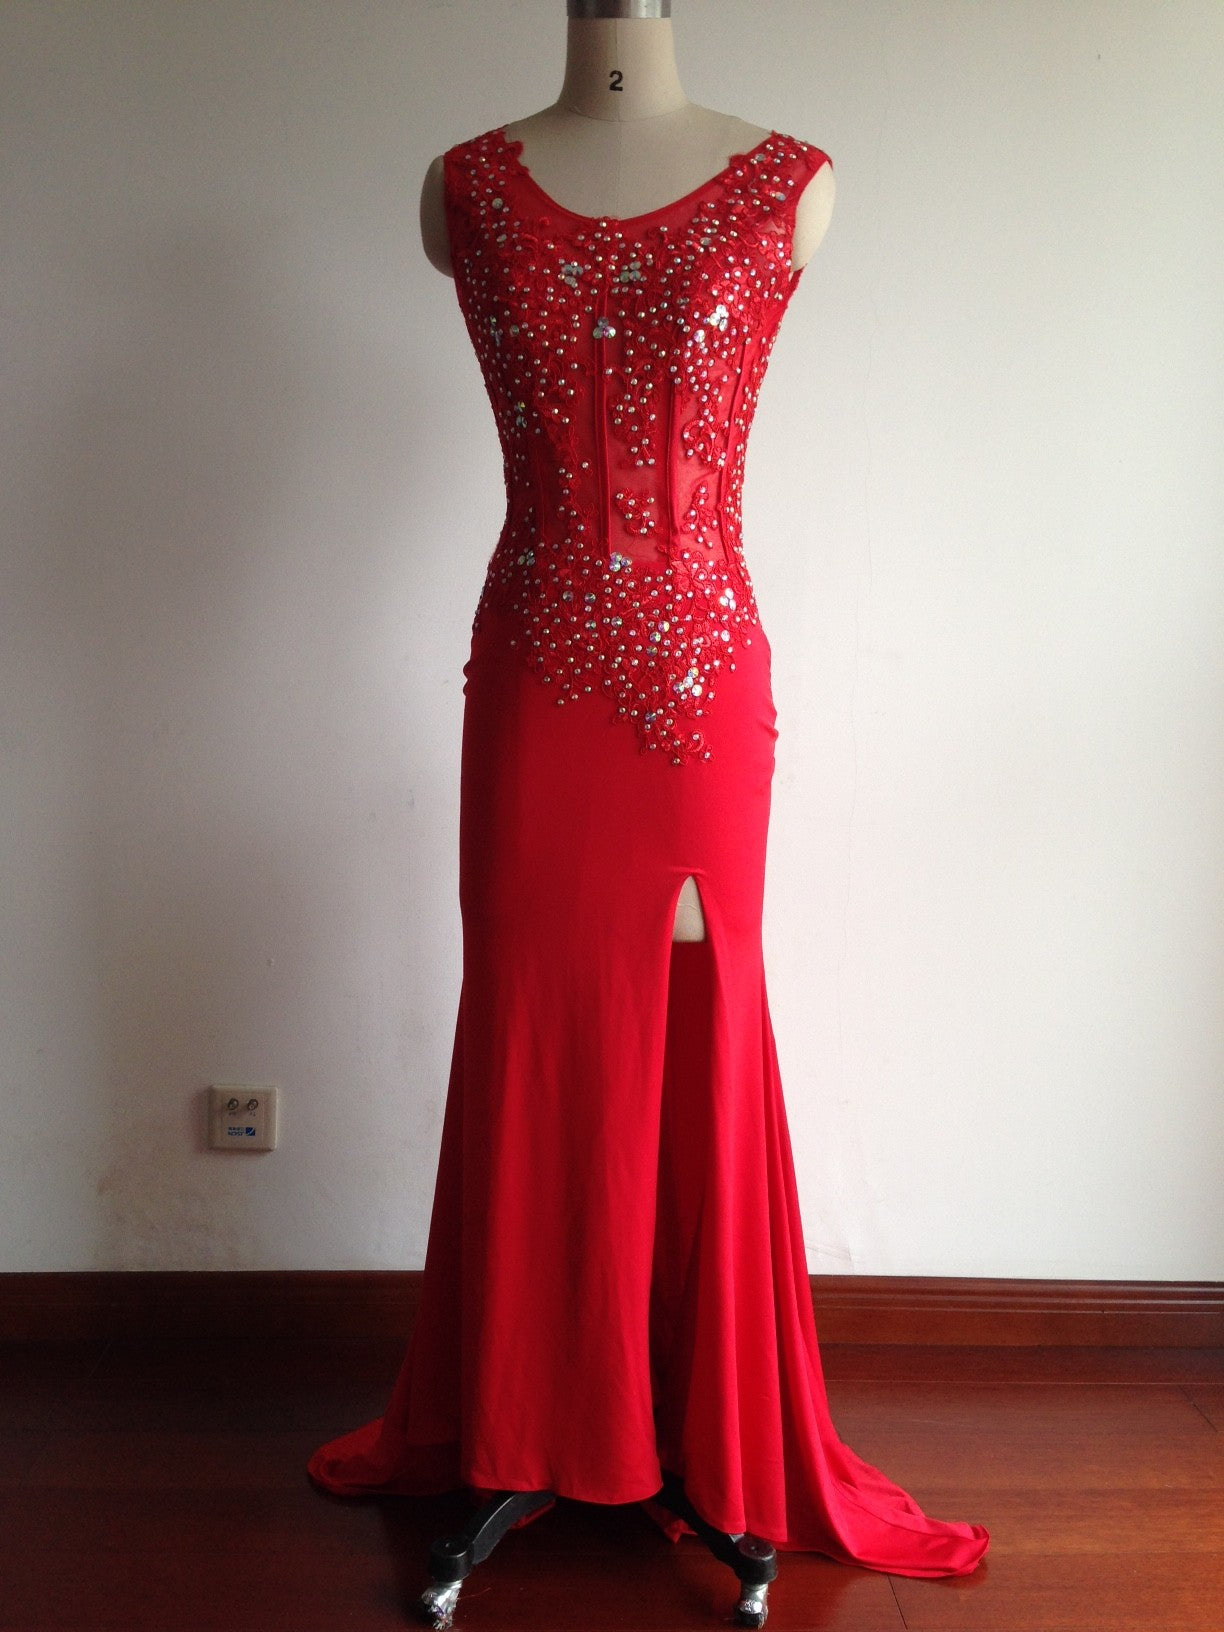 2018 Fashion Prom Dresses,Red Prom Dress,Slit Formal Gown,Red Prom ...